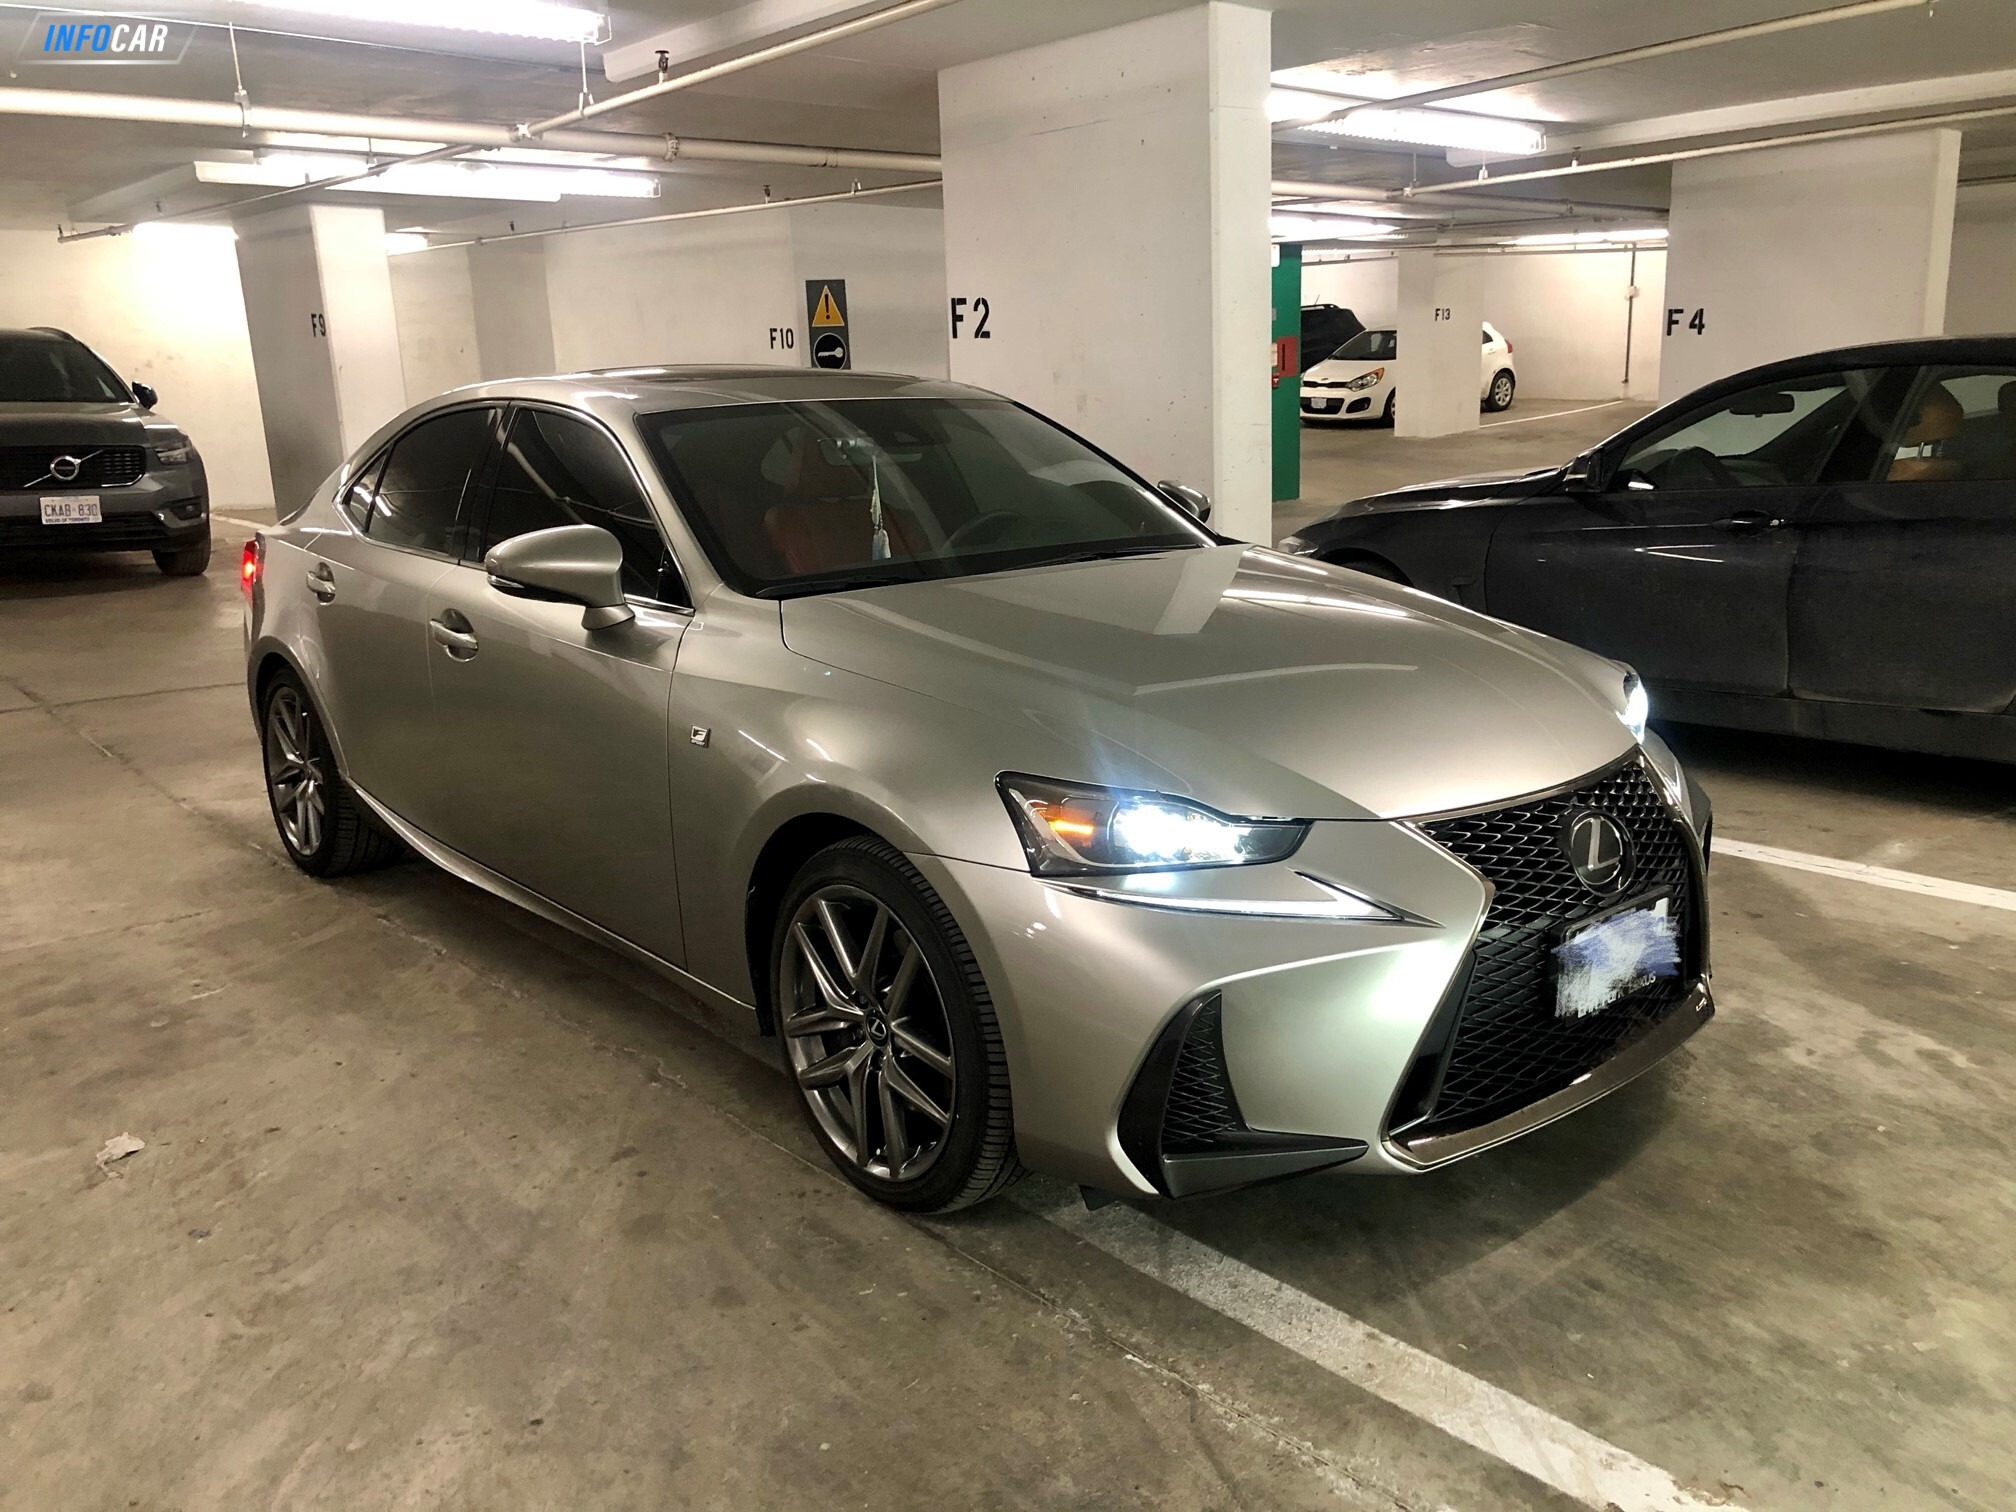 2019 Lexus IS 300 F-Sports AWD - INFOCAR - Toronto's Most Comprehensive New and Used Auto Trading Platform